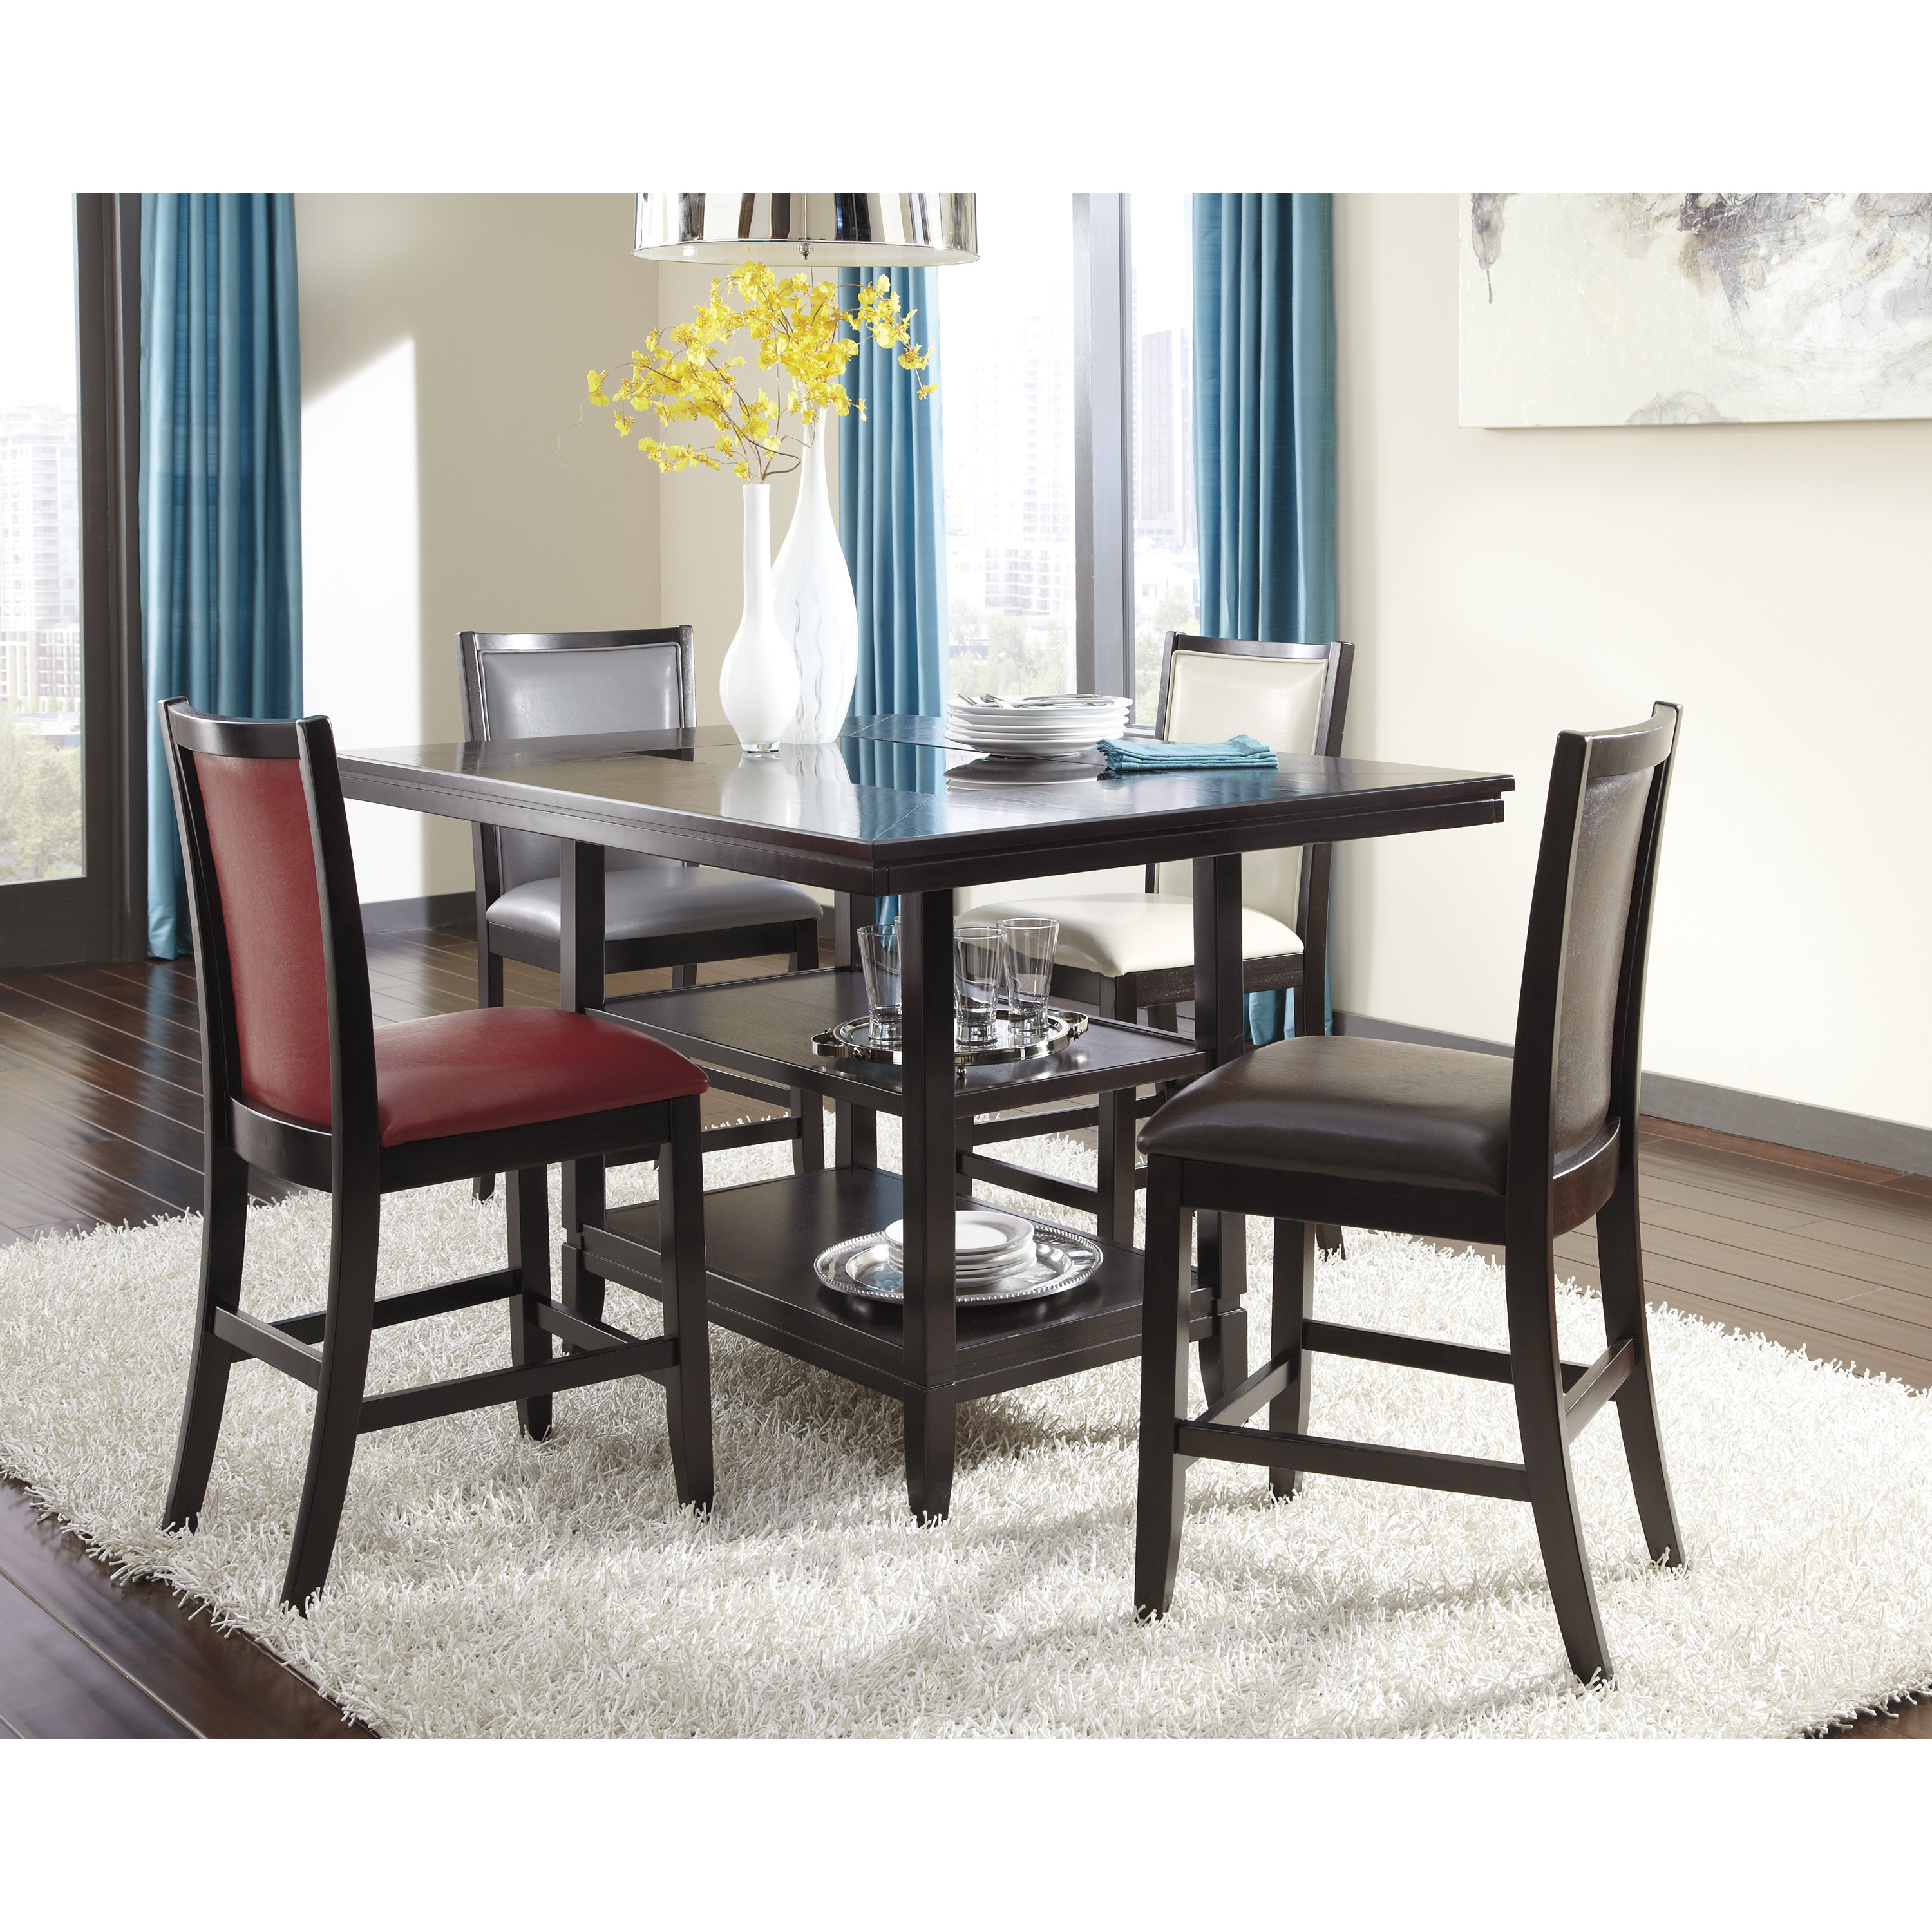 Best ideas about Ashley Furniture Dining Table . Save or Pin Signature Design by Ashley Trishelle Counter Height Dining Now.